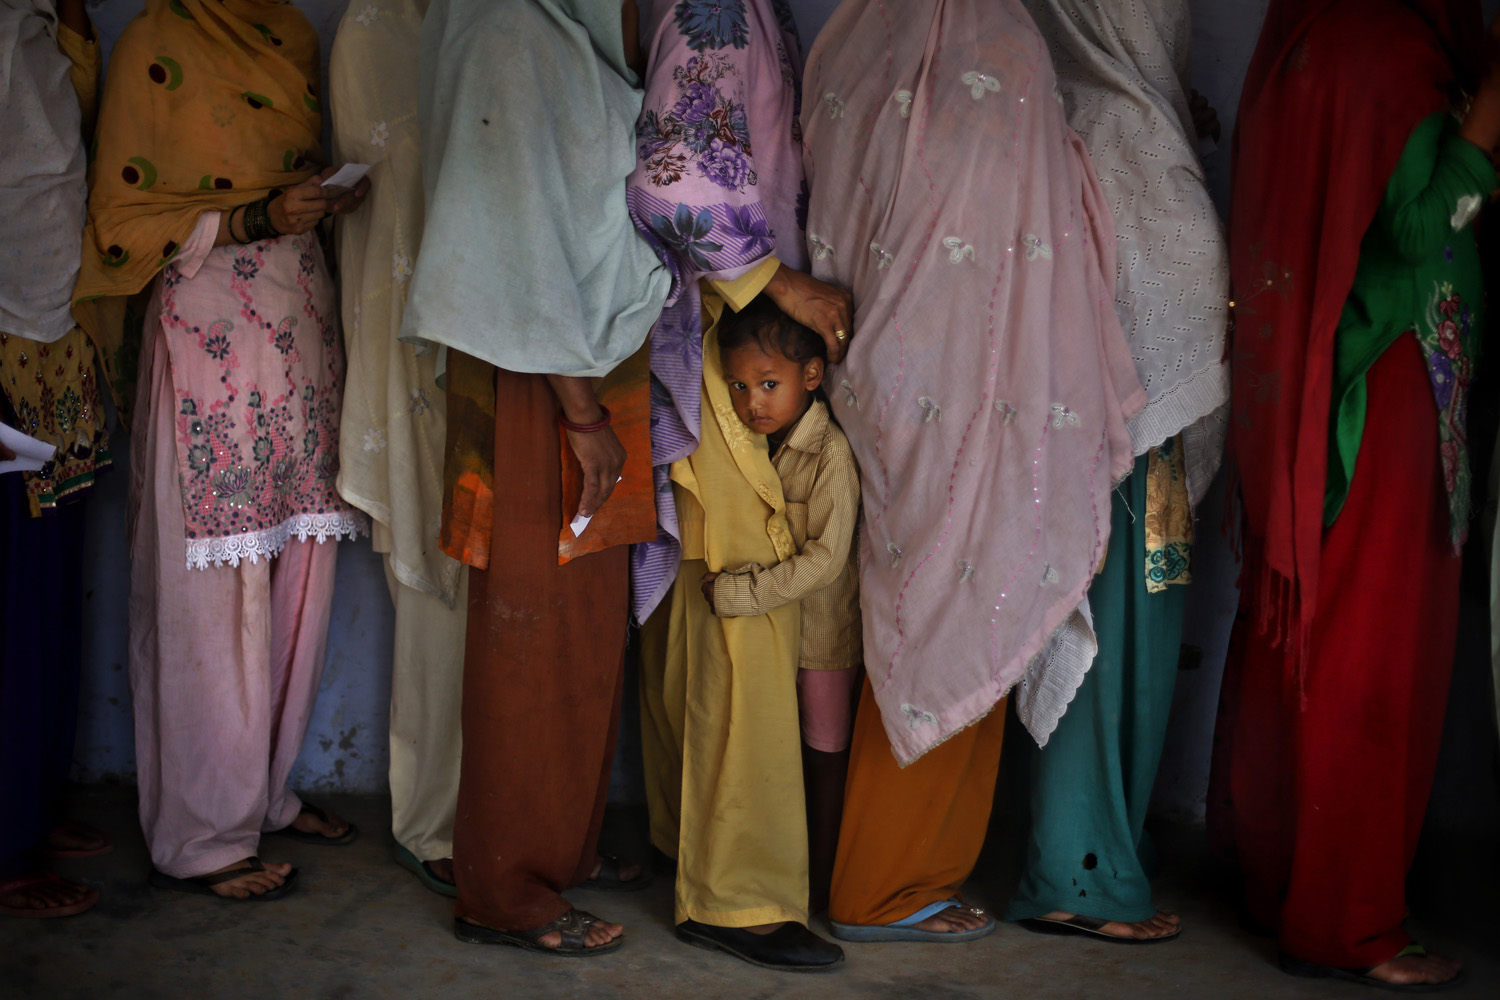 May 15, 2014. A young boy clings to the leg of his mother who stands in a queue to cast her vote during a re-polling of Indian parliamentary elections in Rehna village, in the northern Indian state of Haryana.